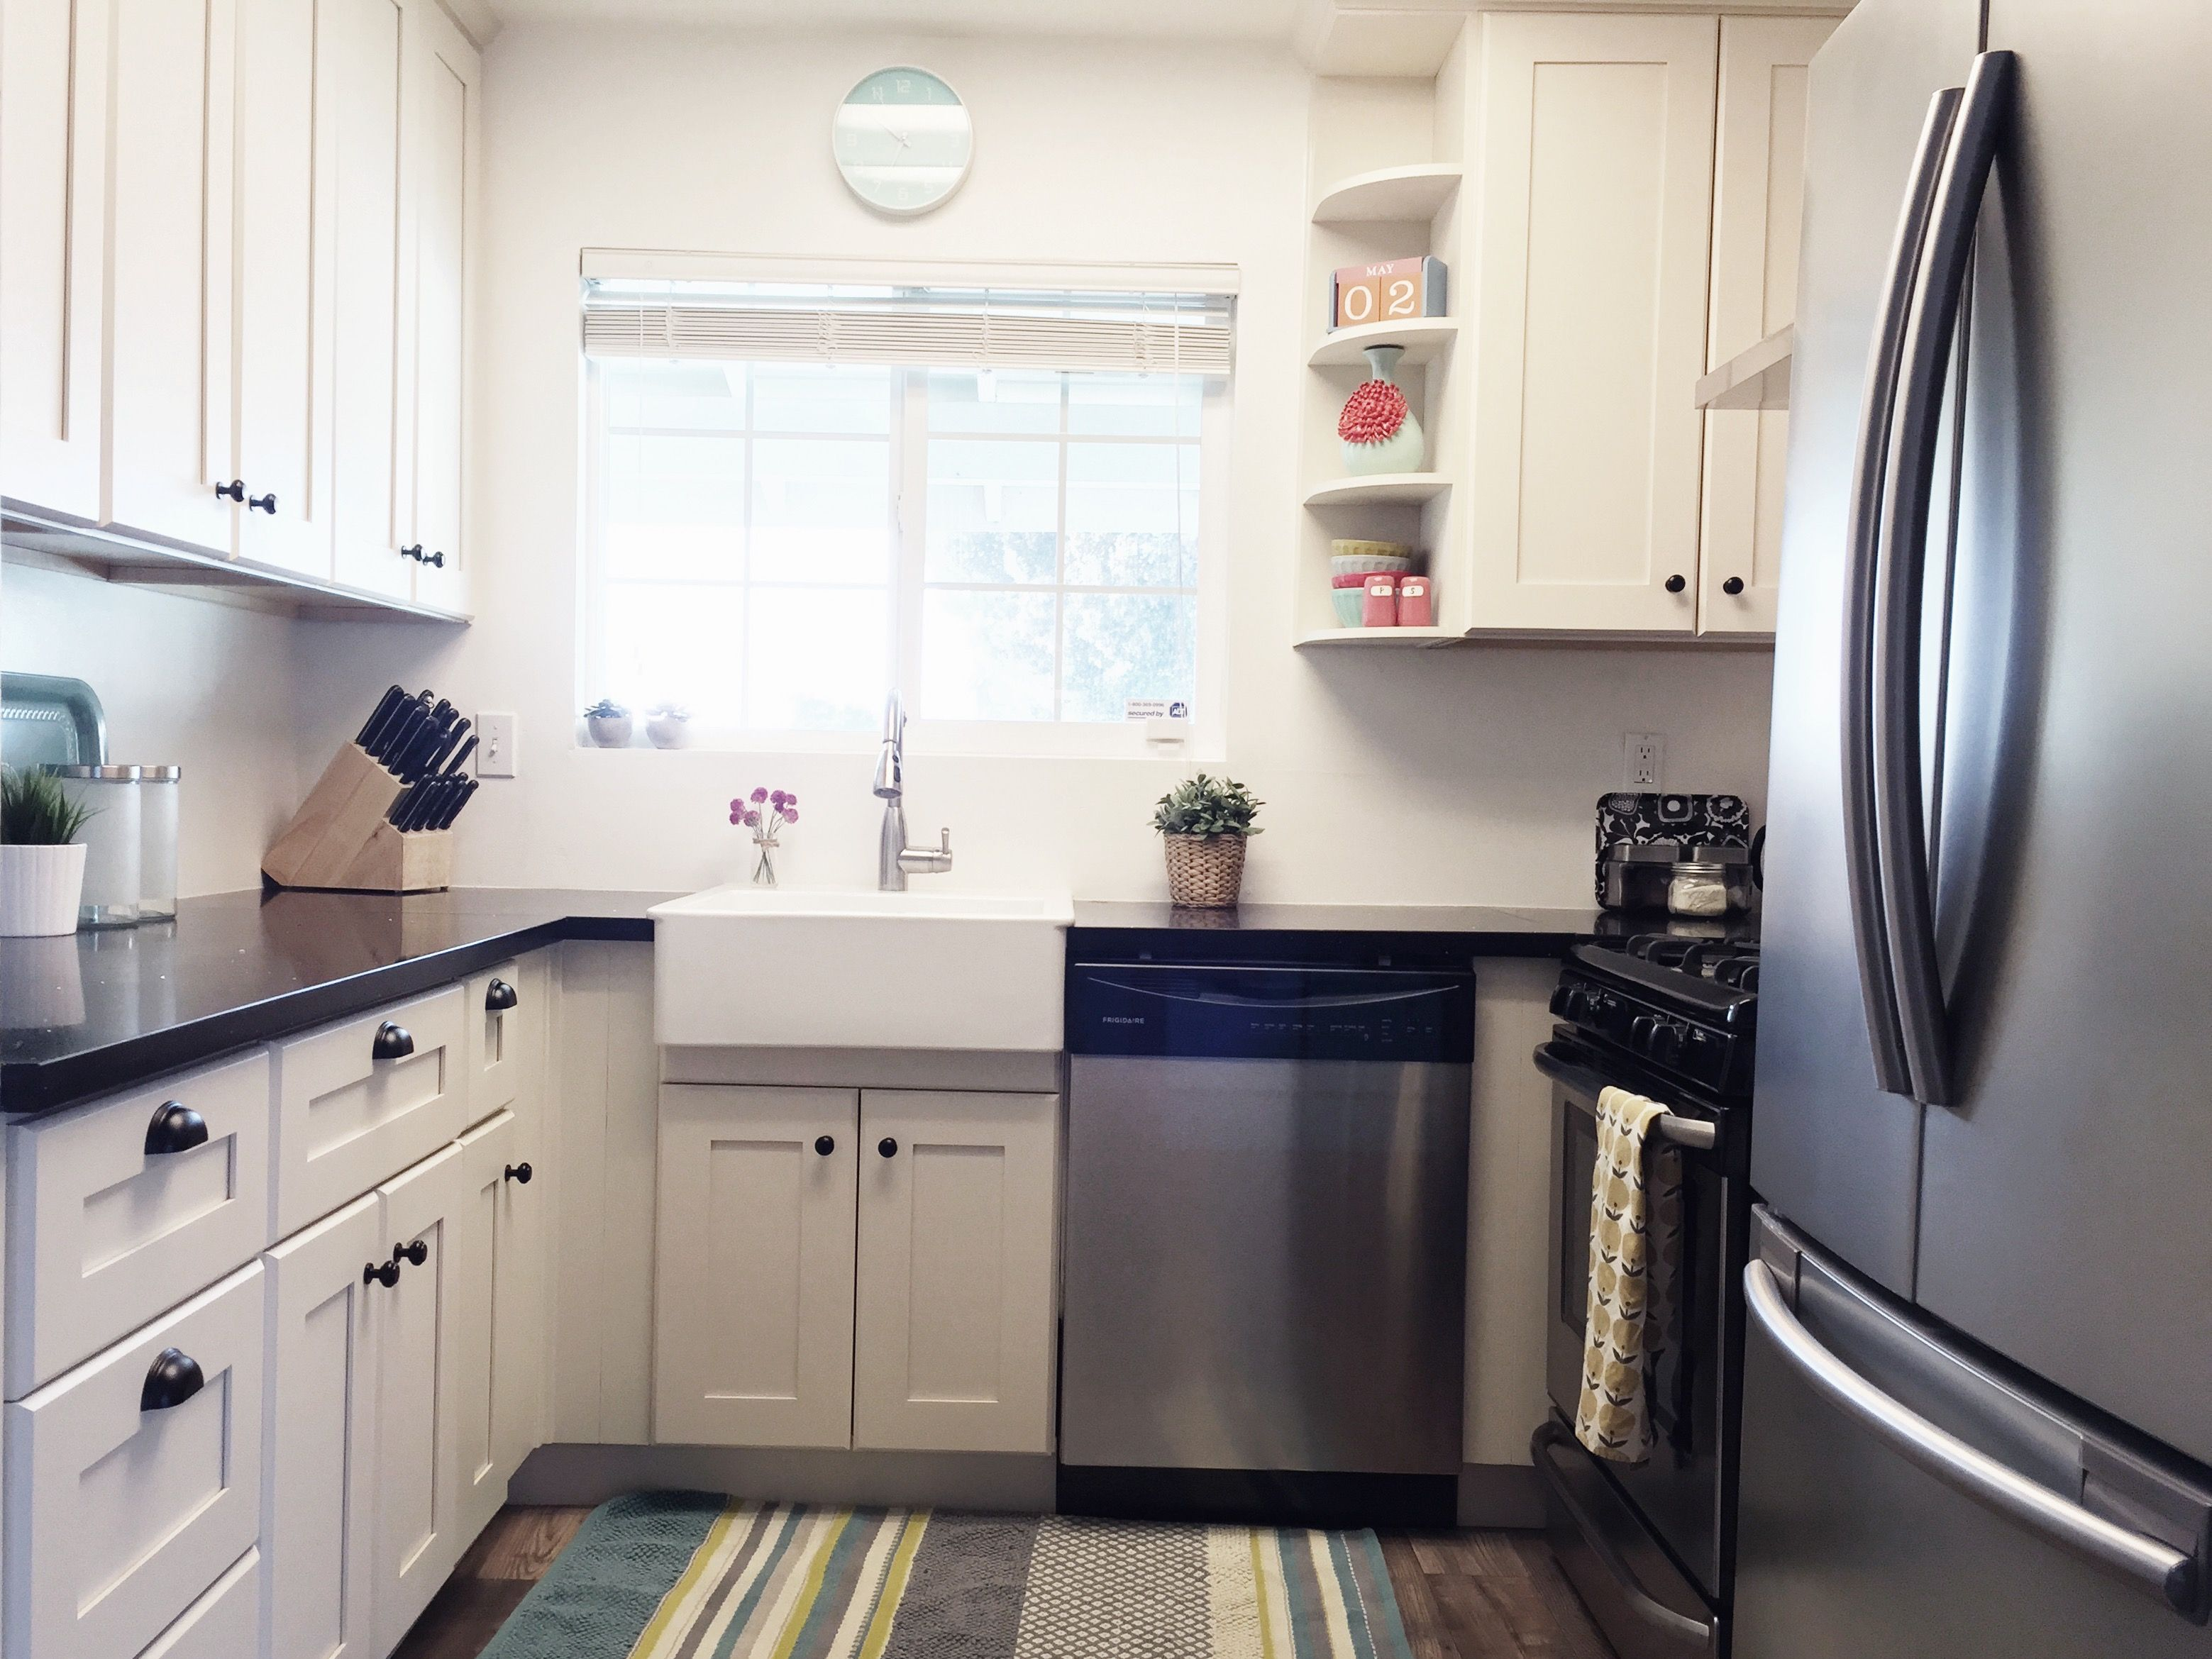 Small kitchen renovated white cabinets white farmhouse from Ikea